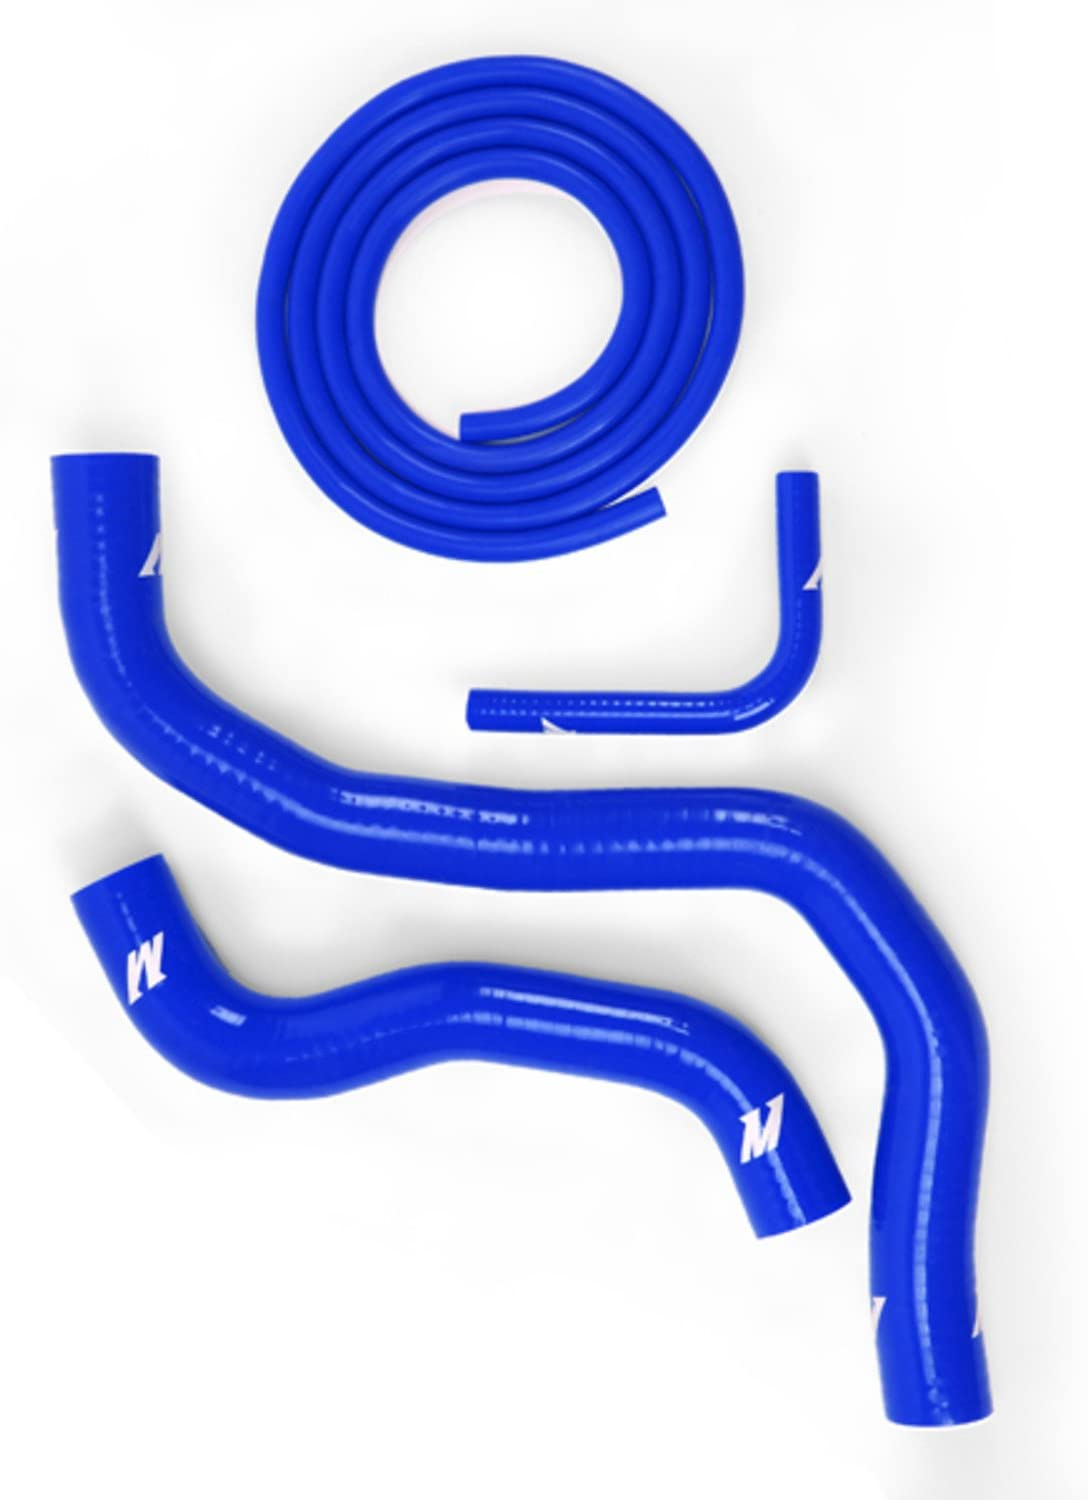 Long Beach Mall Mishimoto MMHOSE-3G-00BL Silicone Ranking TOP19 Radiator Kit Compatible W Hose